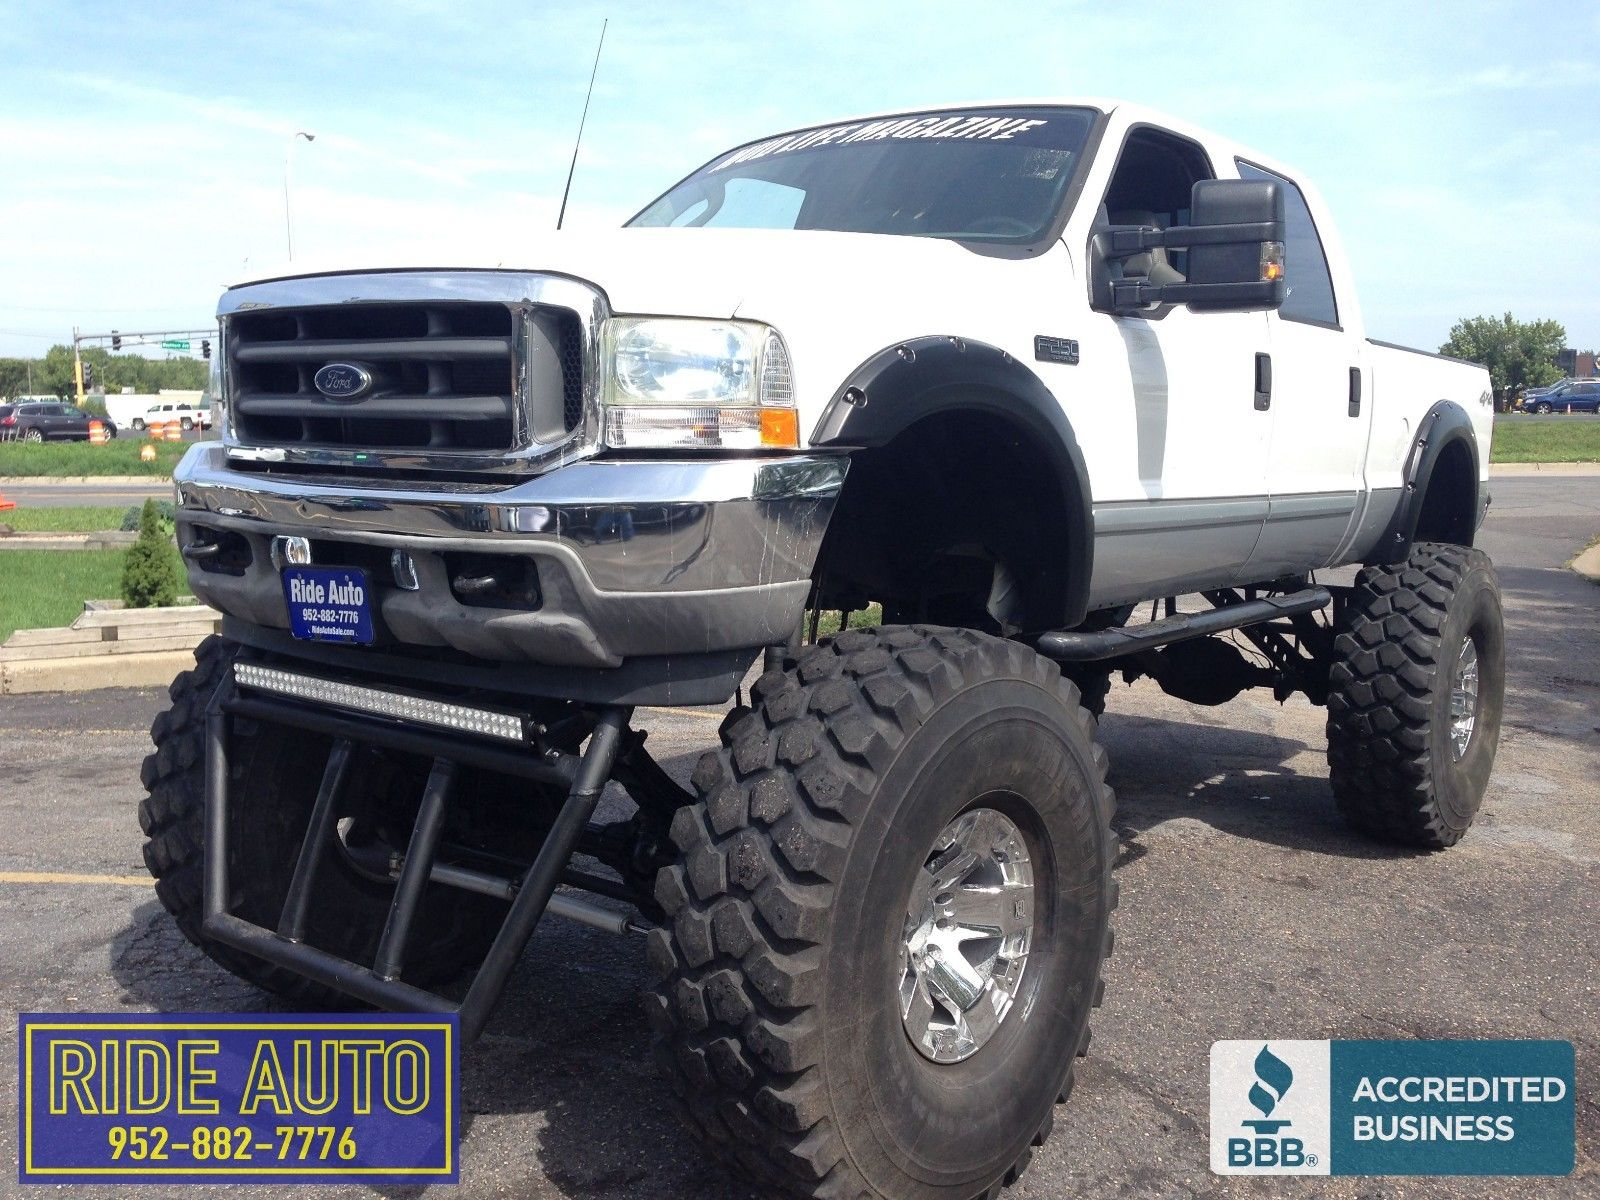 huge 2003 ford f 250 lariat monster truck for sale. Black Bedroom Furniture Sets. Home Design Ideas